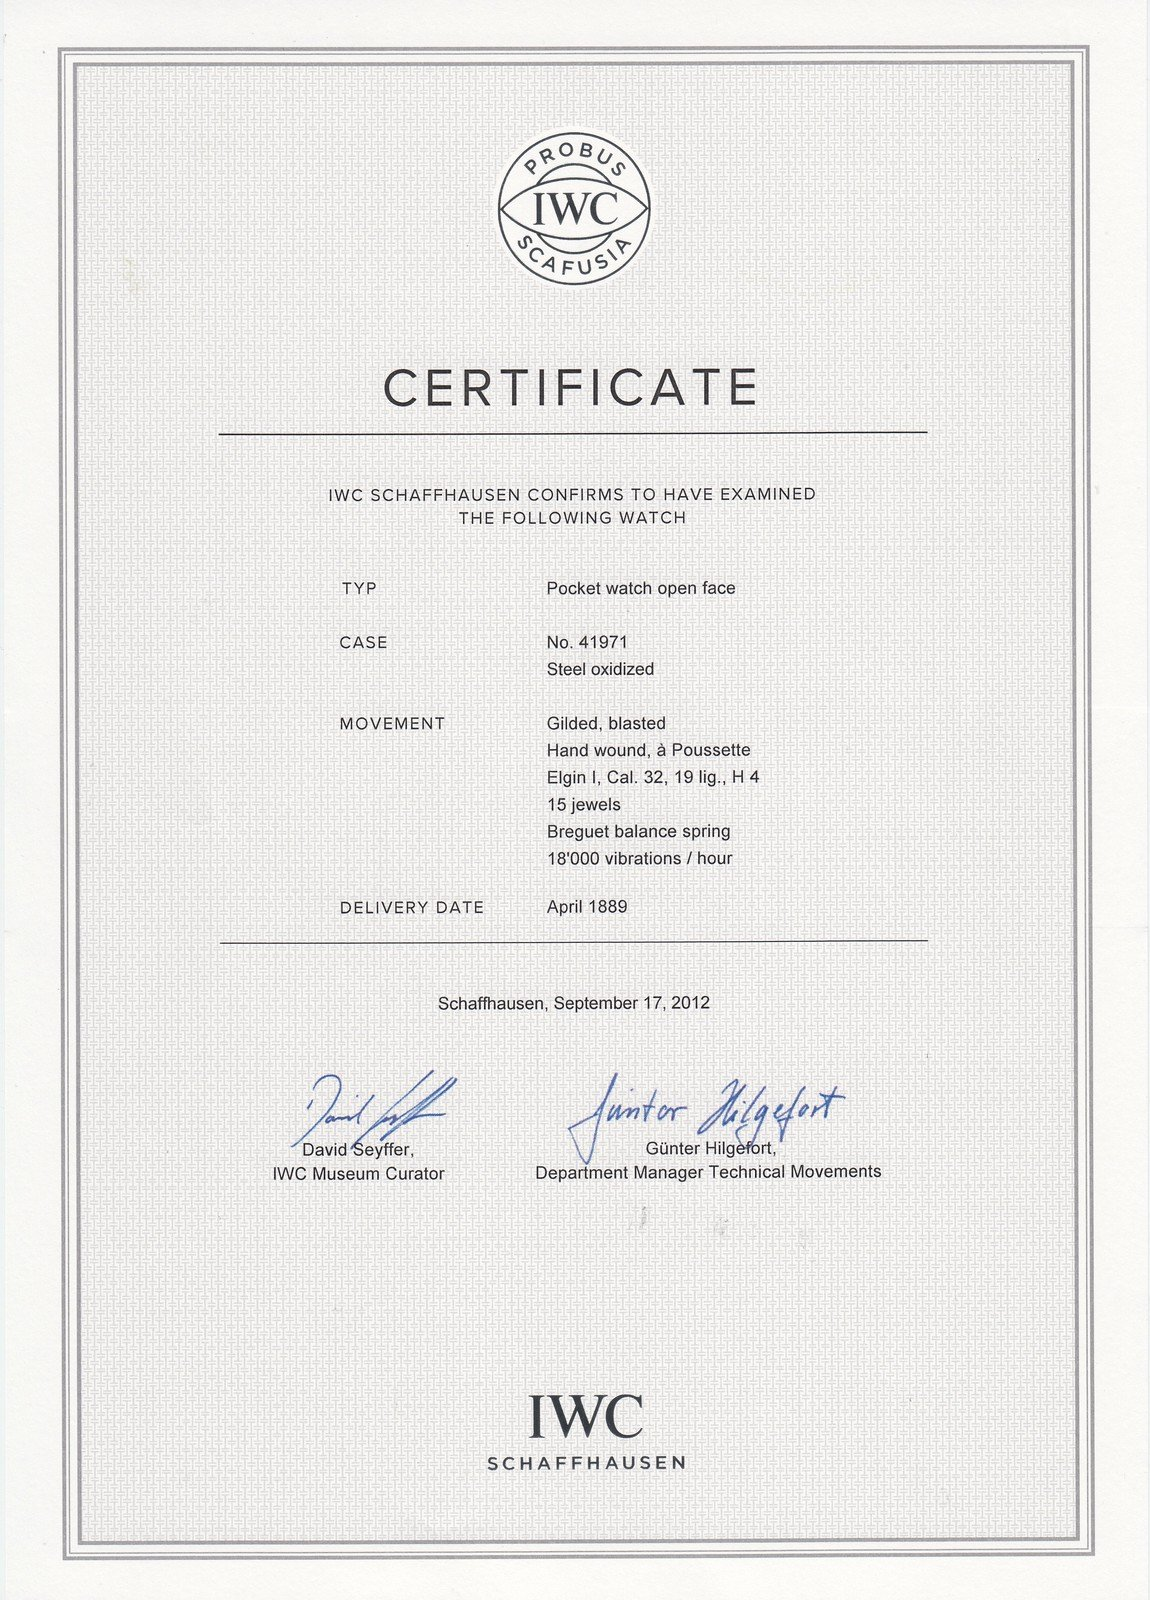 Fake Certificate Of Authenticity Fresh Certificate Of Authenticity Update On Situation as